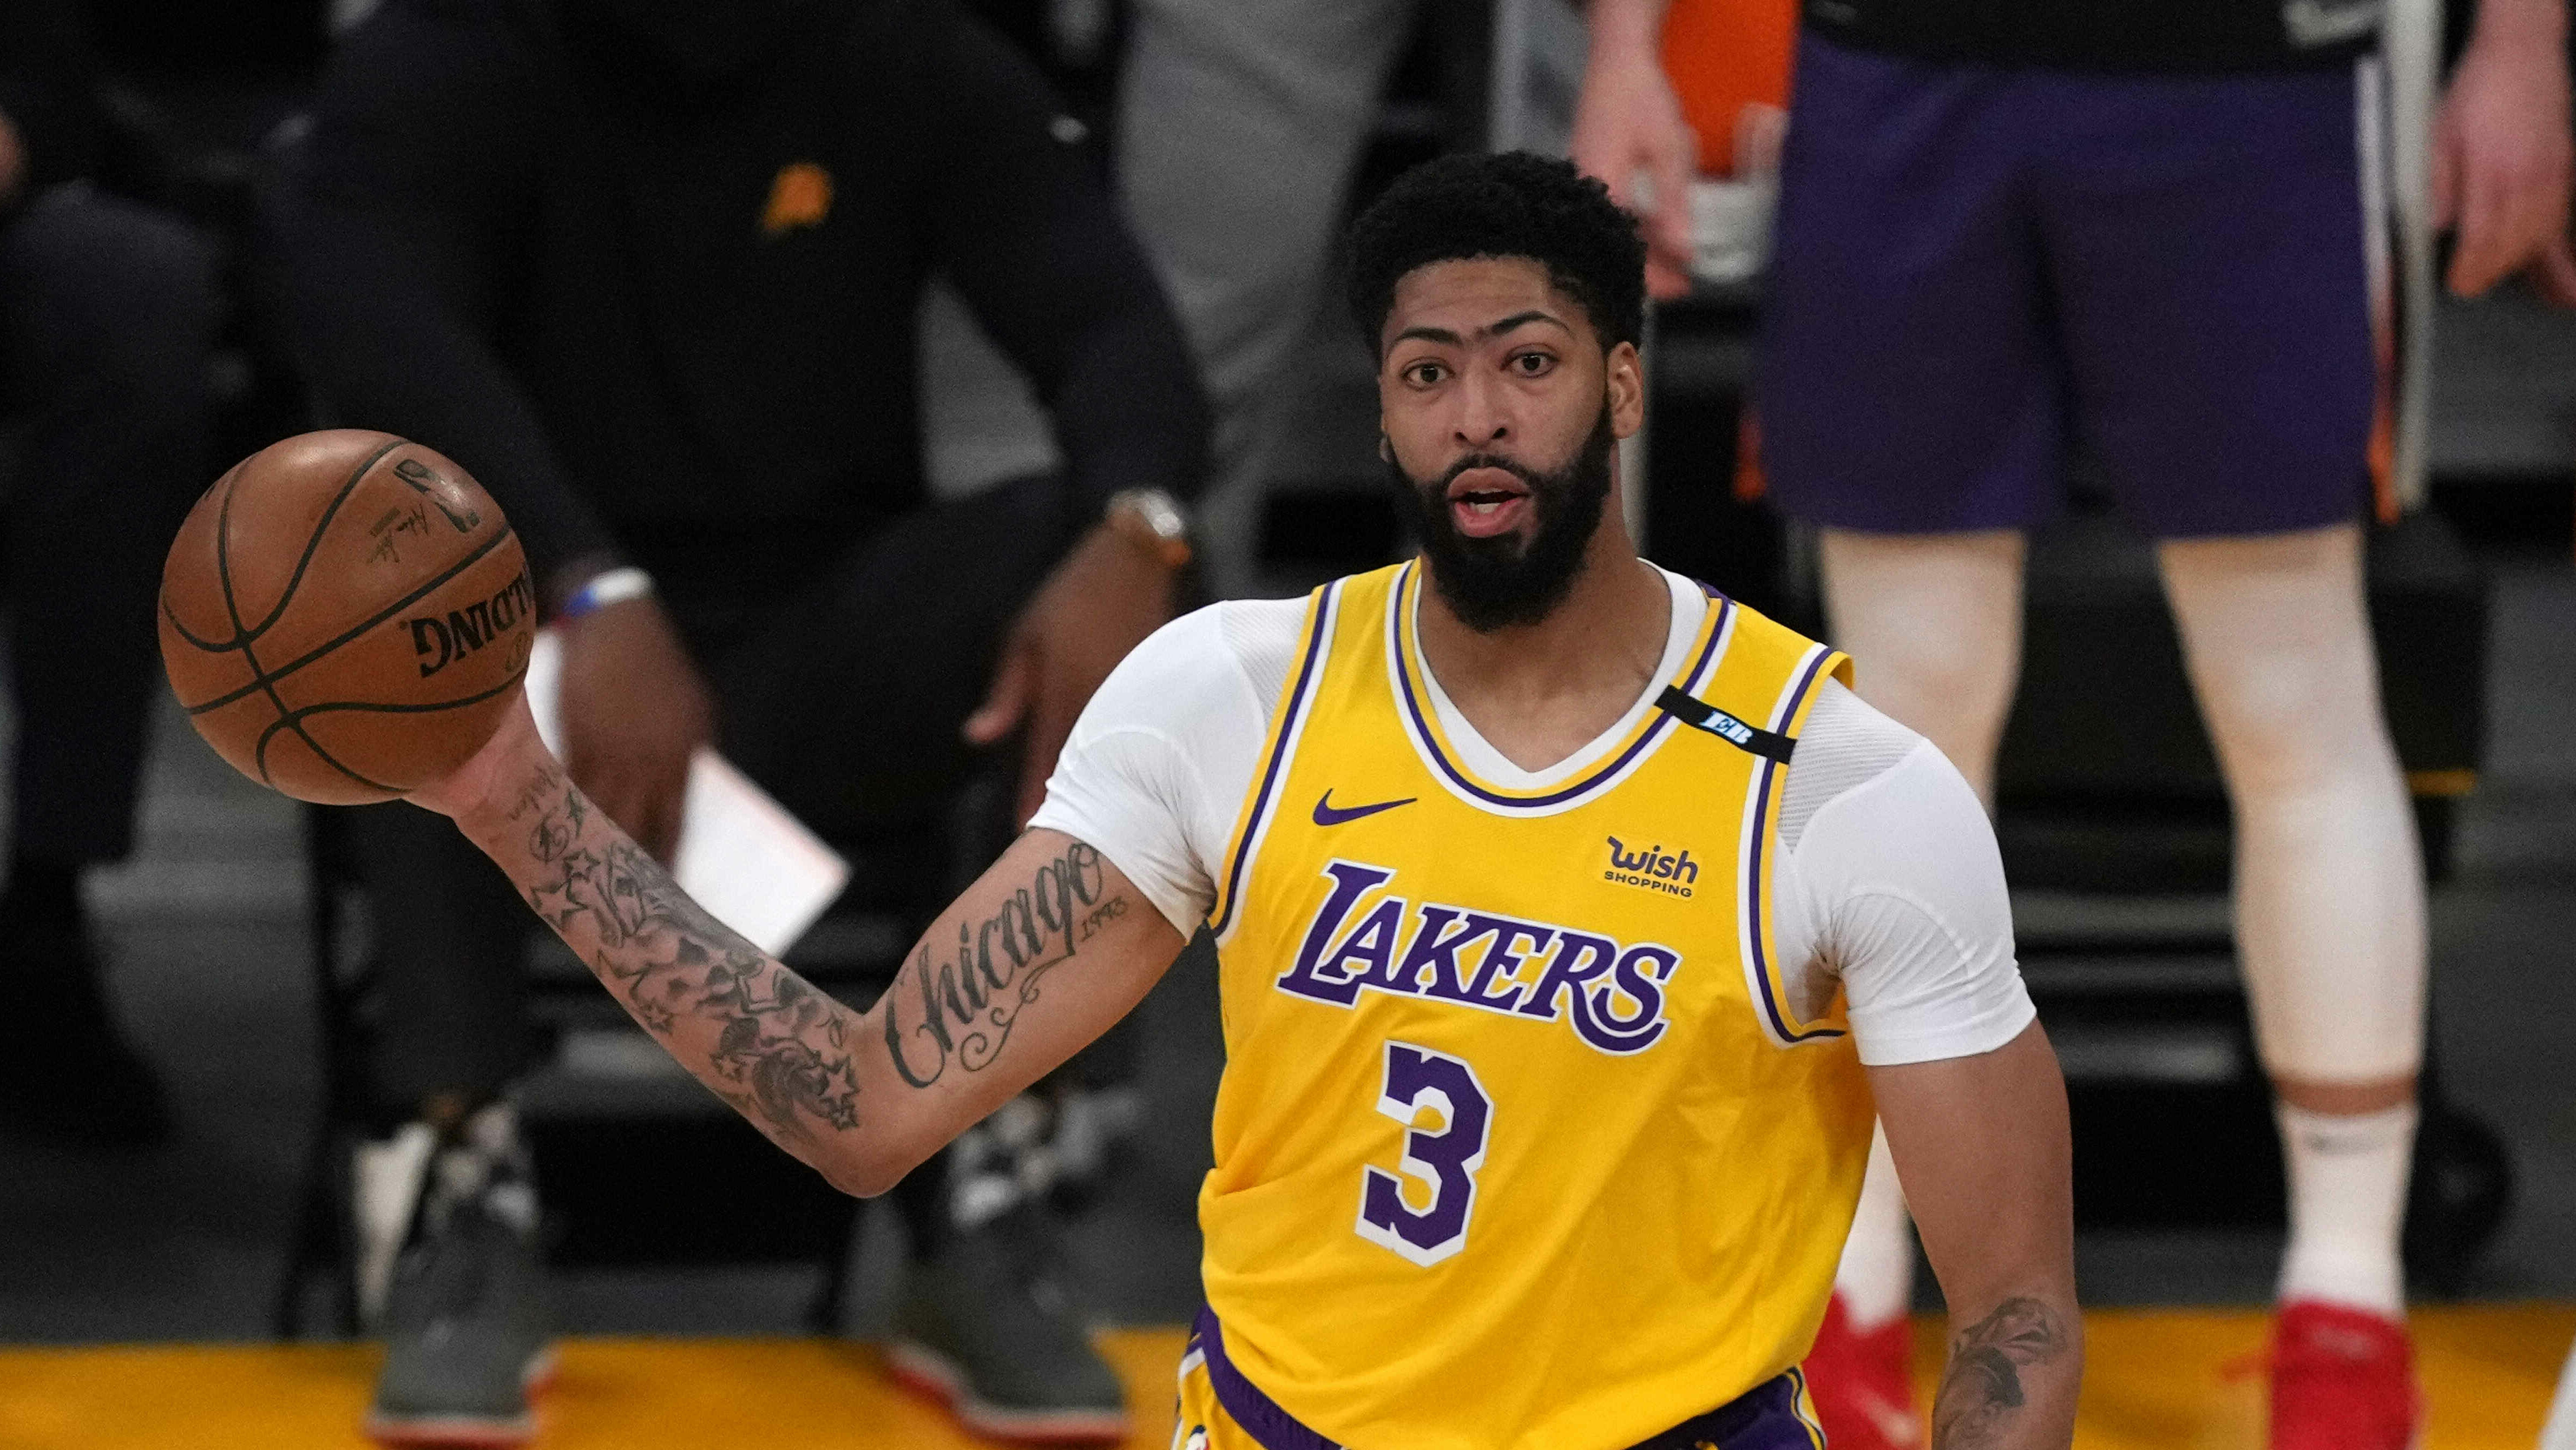 Anthony Davis plays in Game 6, but exits in 1st quarter